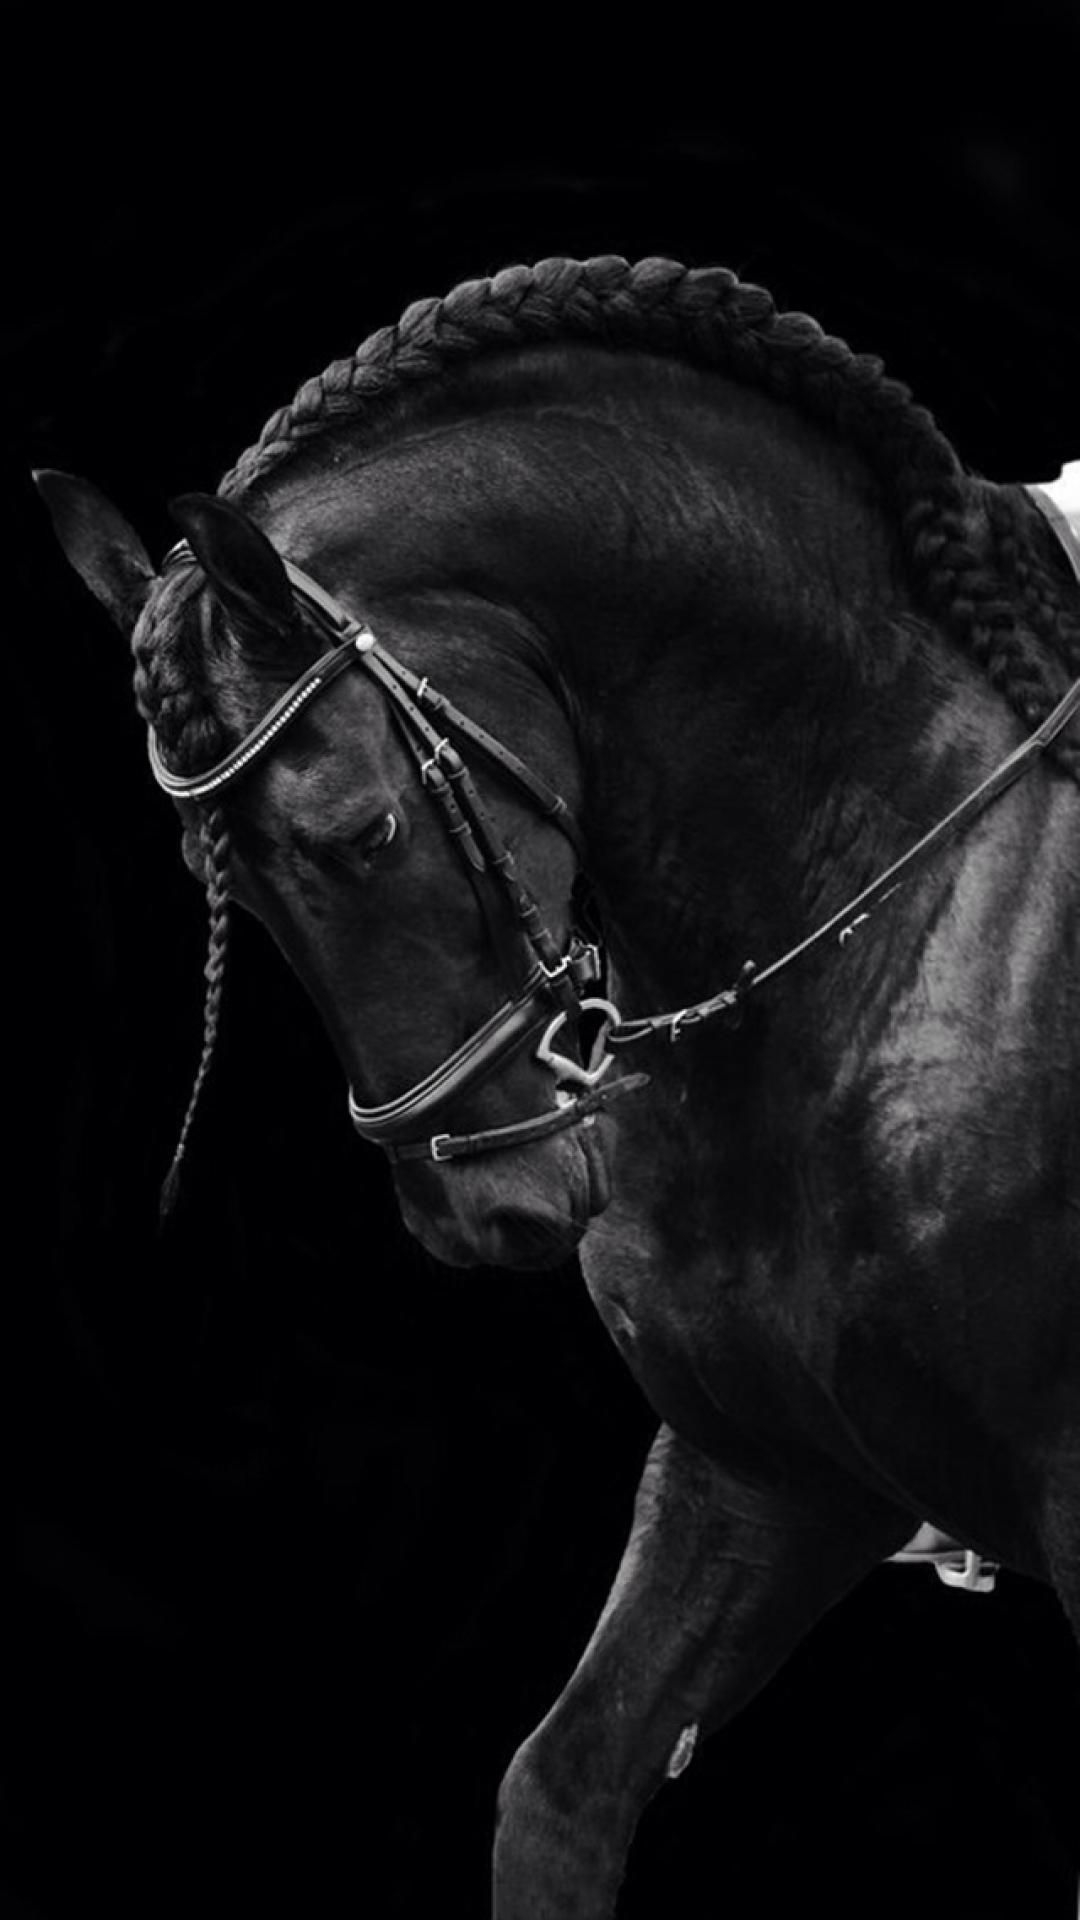 Black Quenalbertini Iphone Wallpaper Iphone 6 Retina Wallpaper Black Horses Friesian Horse Pretty Horses